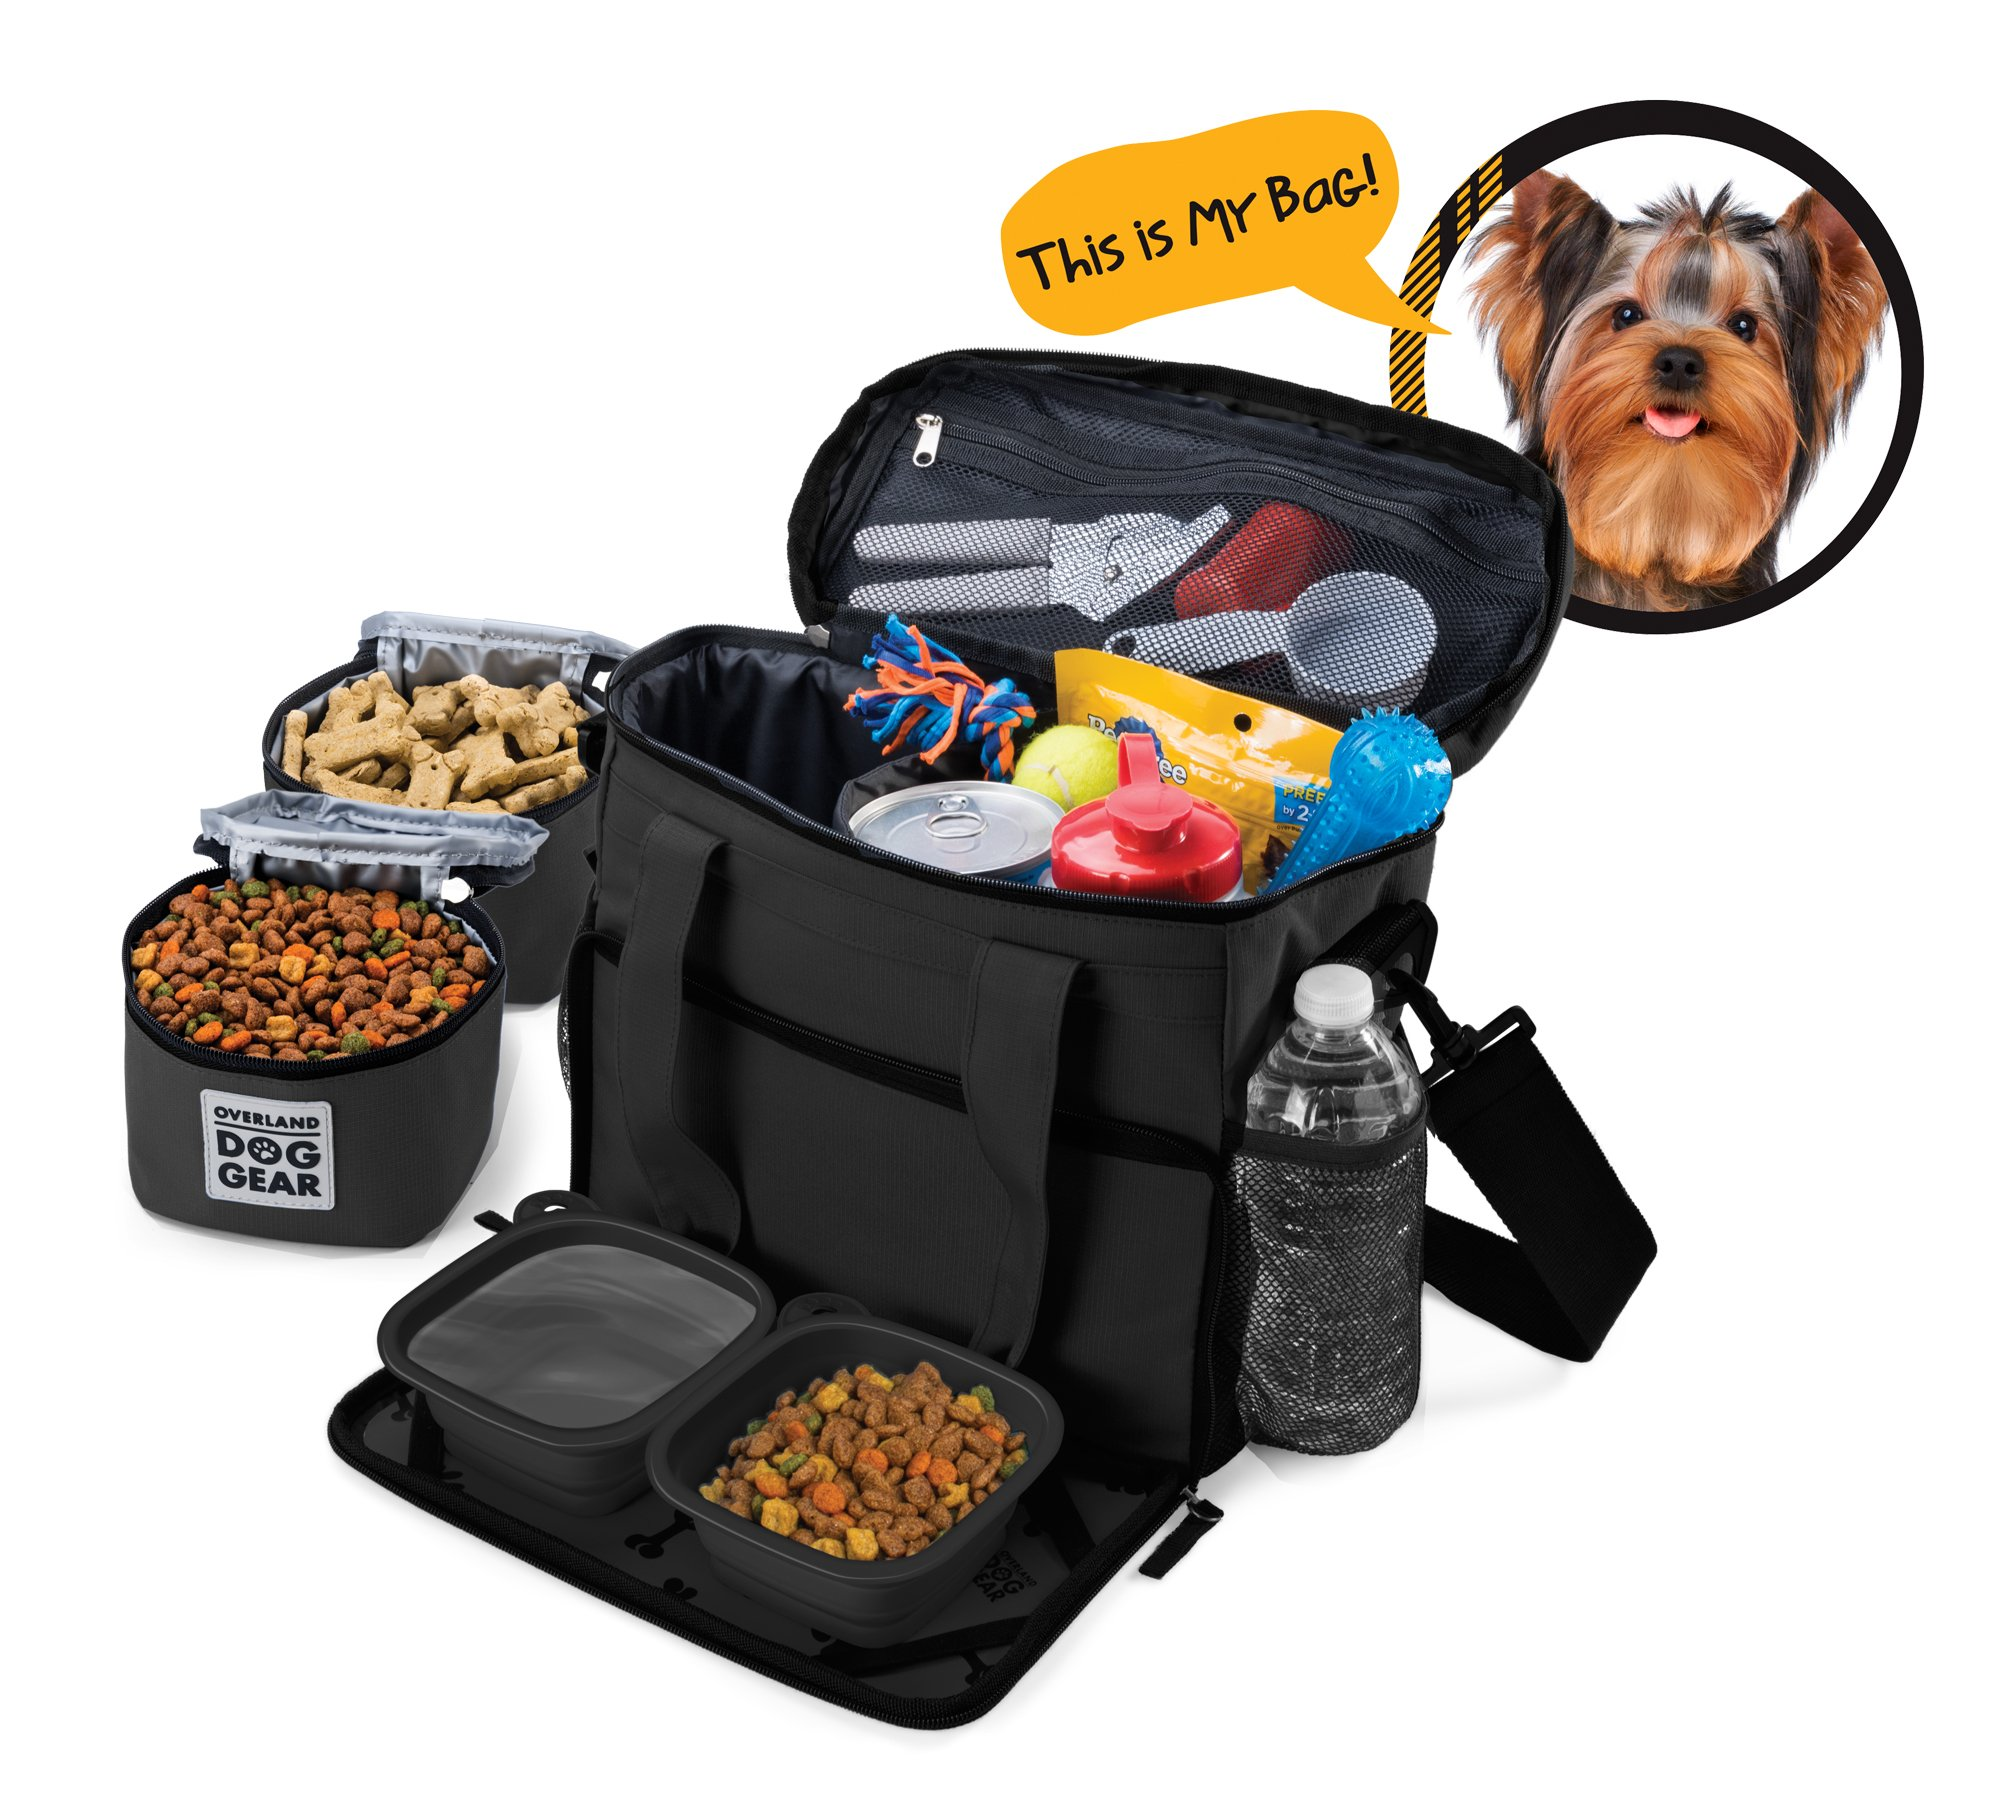 Overland Travel Dog Tote Bag Includes Collapsible Silicone Bowls by Overland Travel